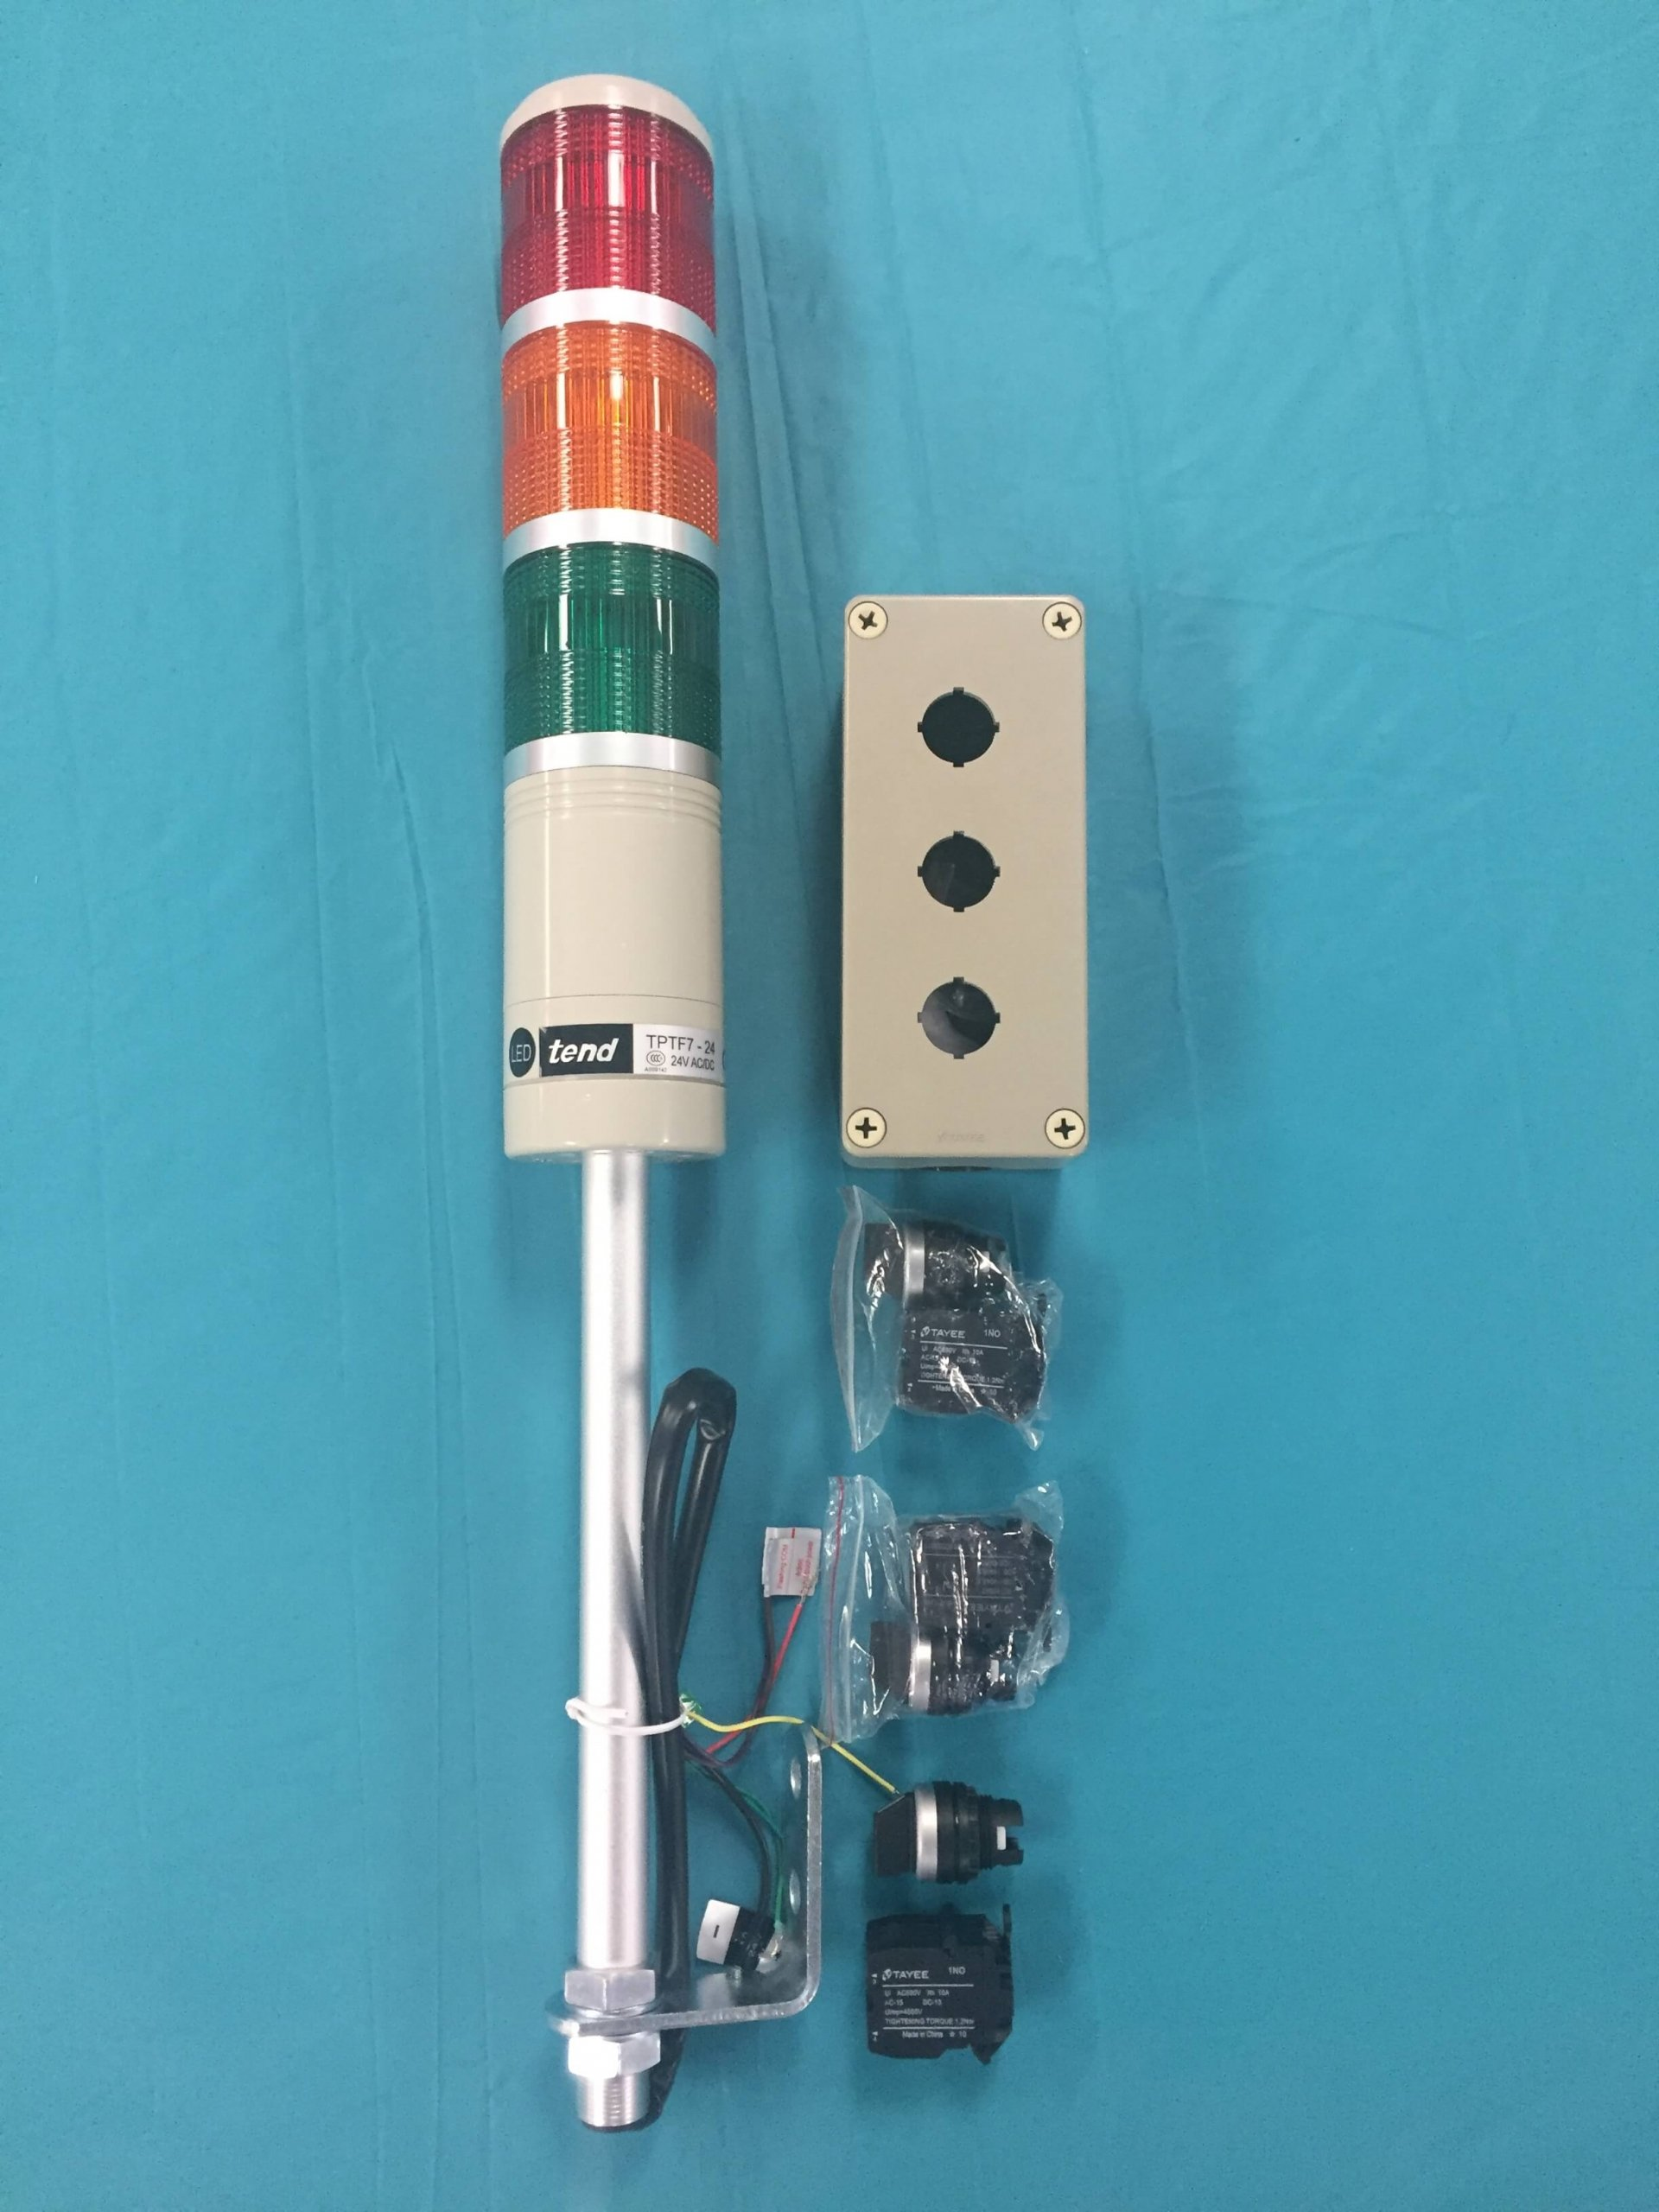 LED Tower Light Red Yellow Green Solid with Continuous or Flashing Lighting with Audible Alarm